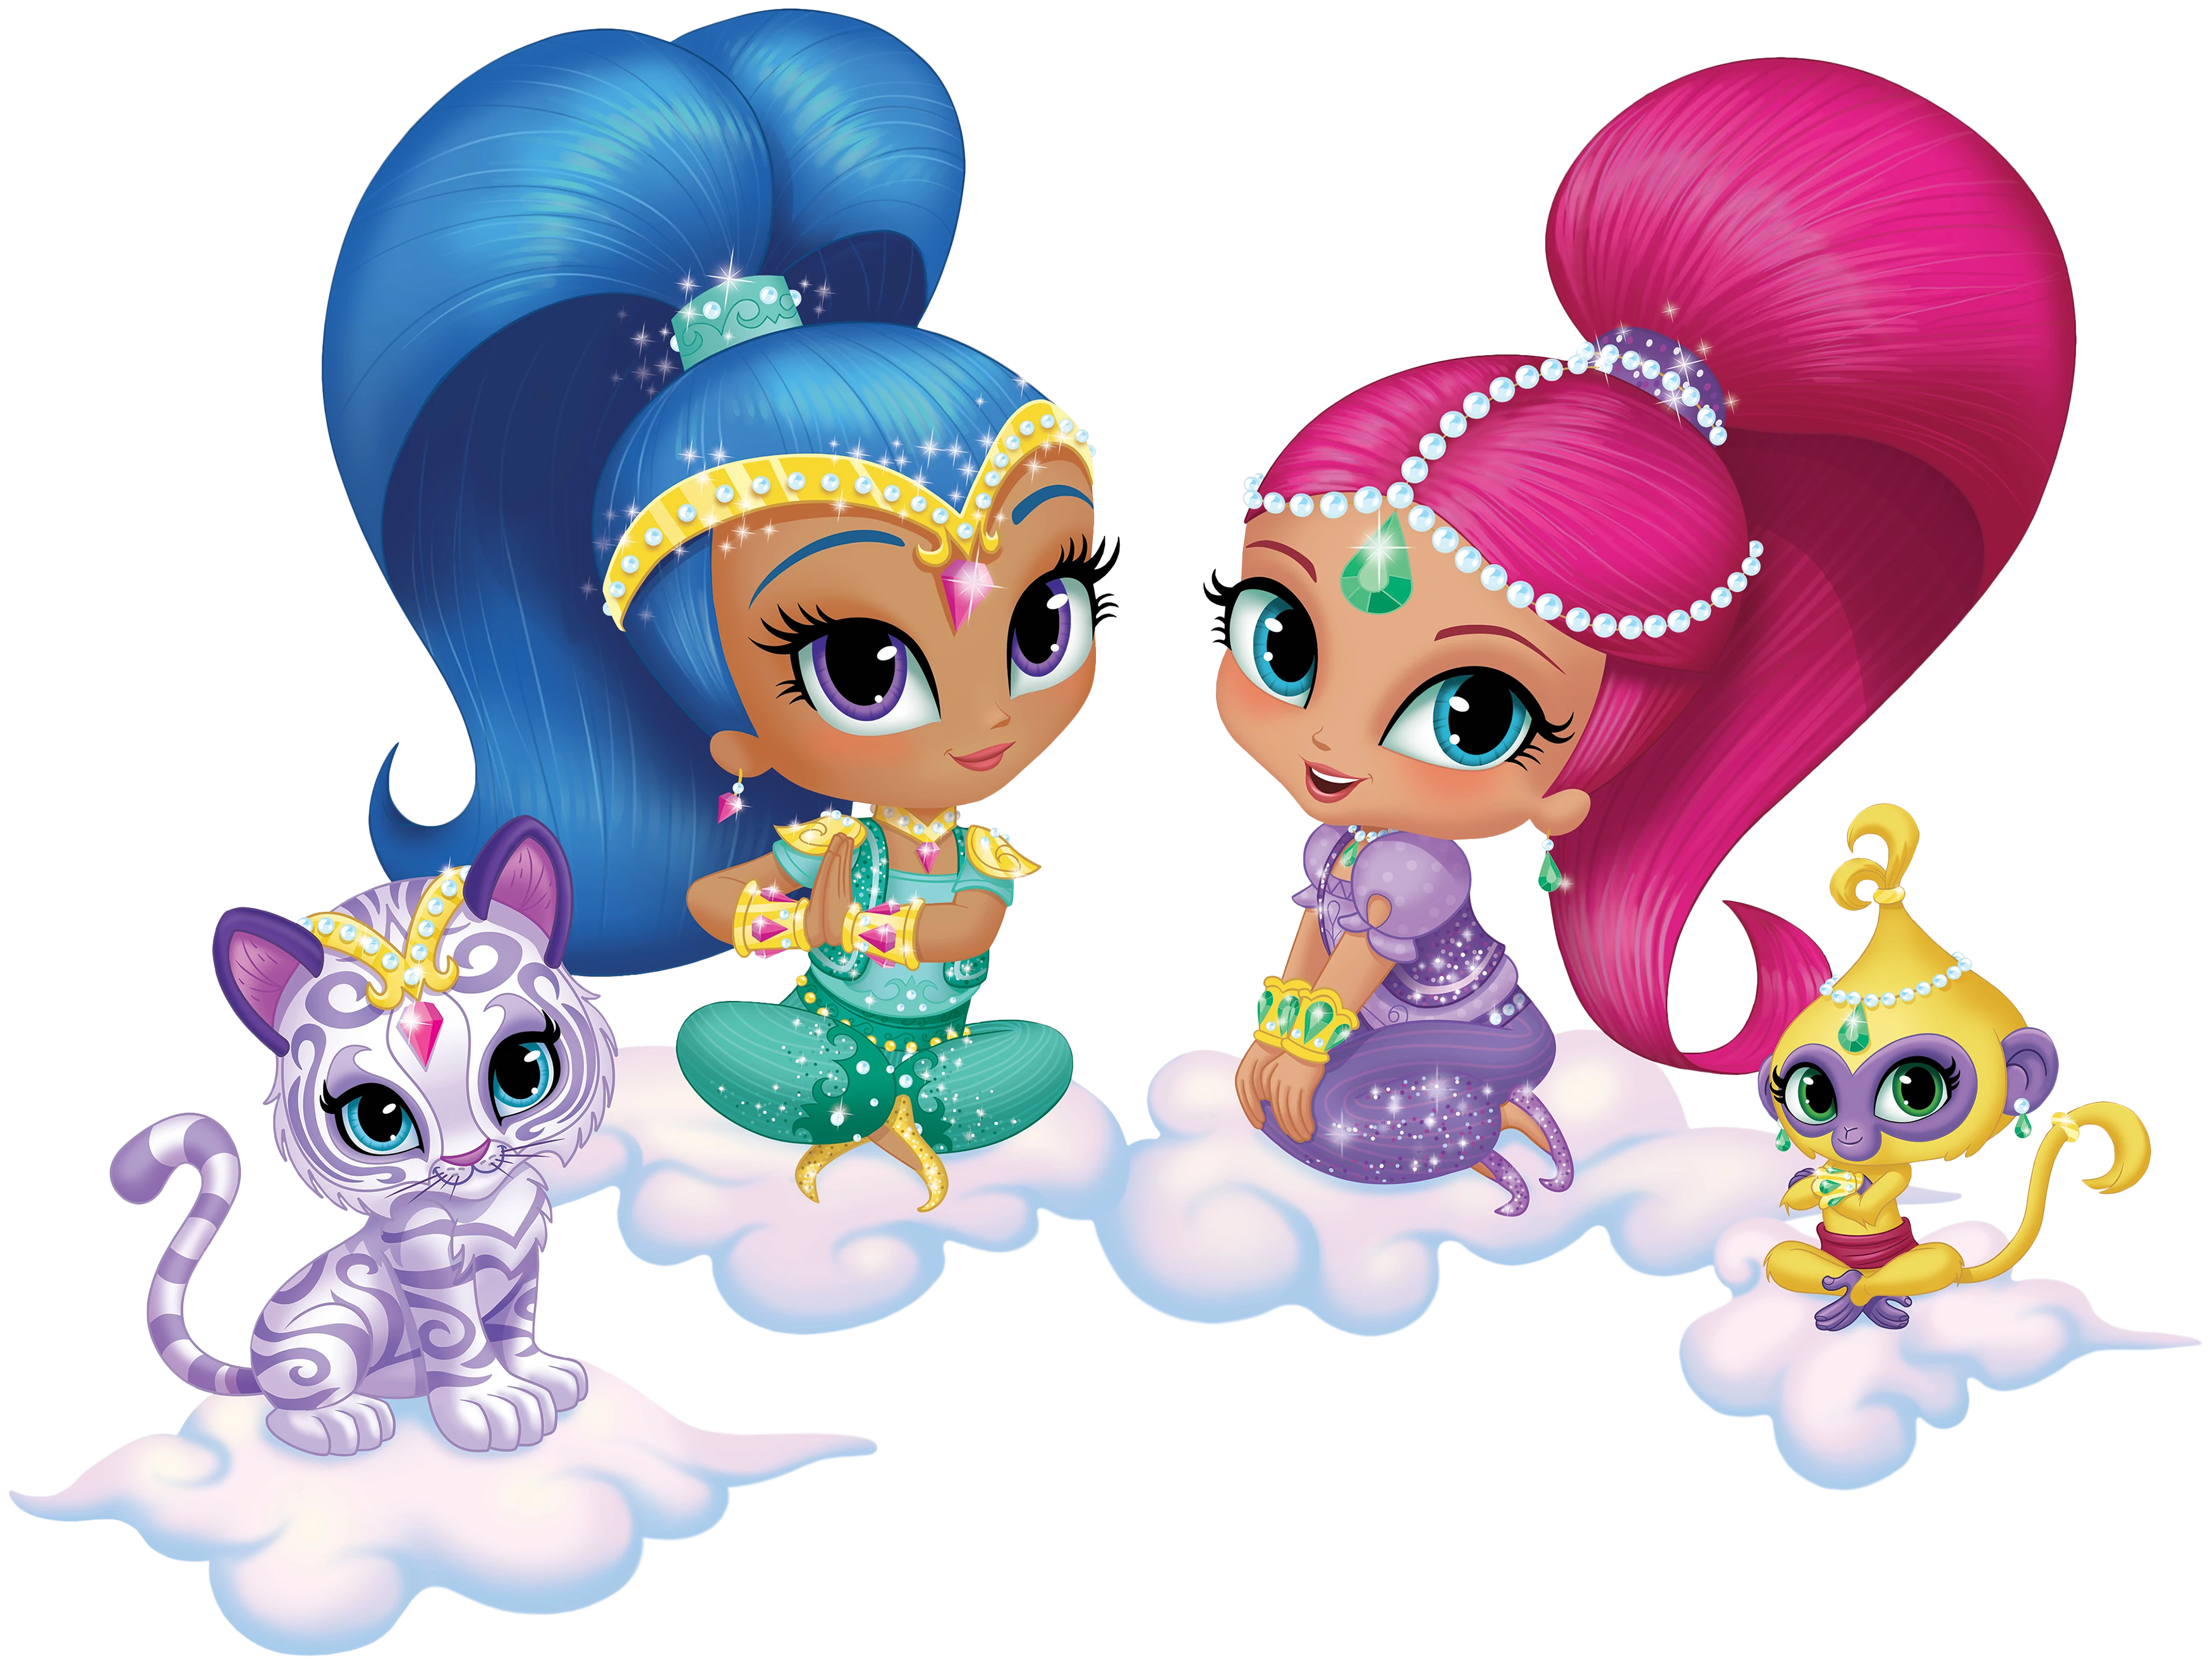 Transparent cartoon image gallery. Shimmer and shine png images